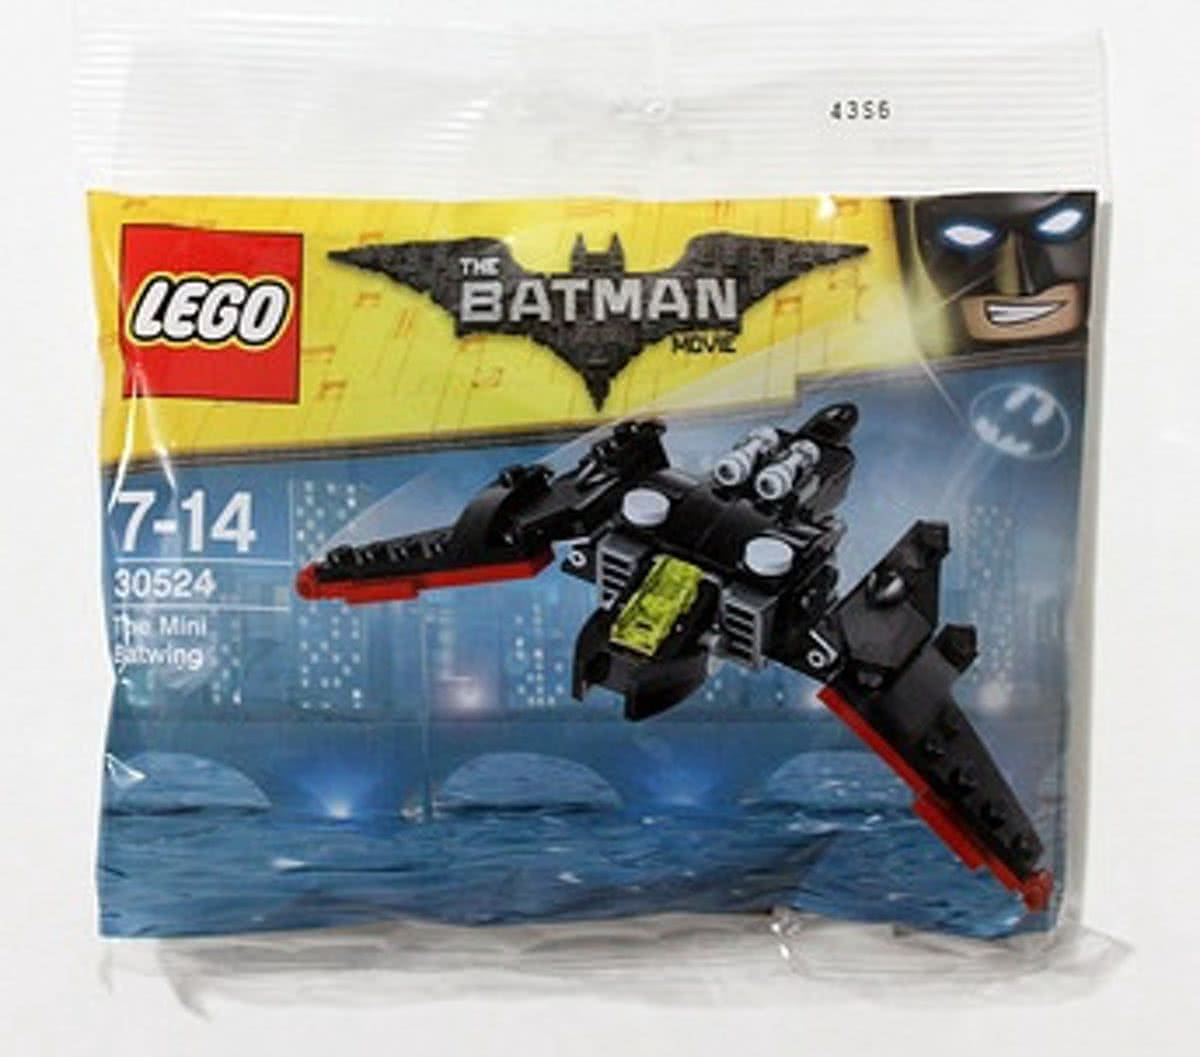 LEGO The Batman Movie, The Mini Batwing 30524